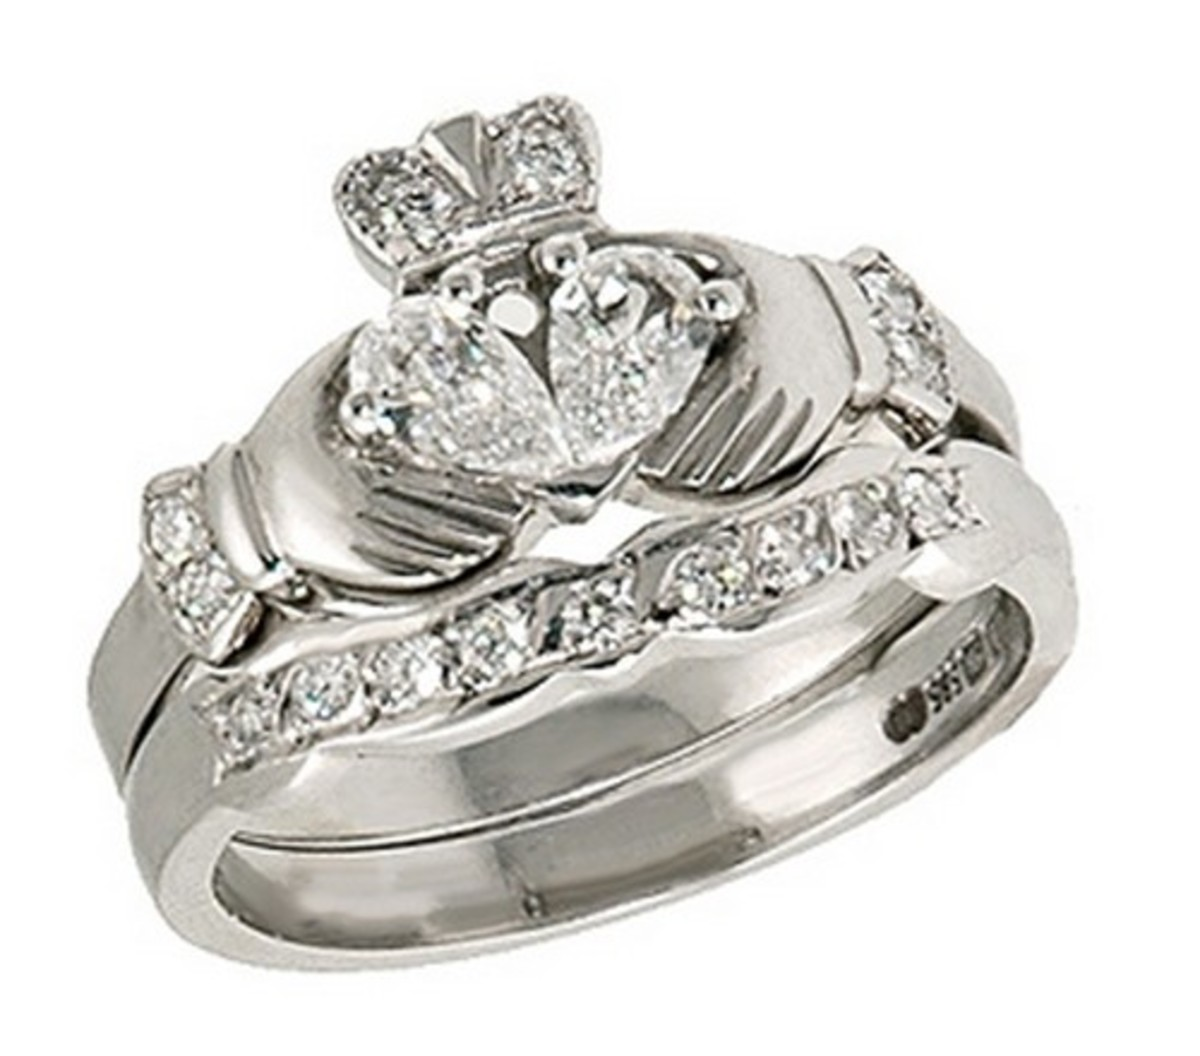 Irish Wedding Rings.Irish Themed Wedding Ideas And Decorations Holidappy